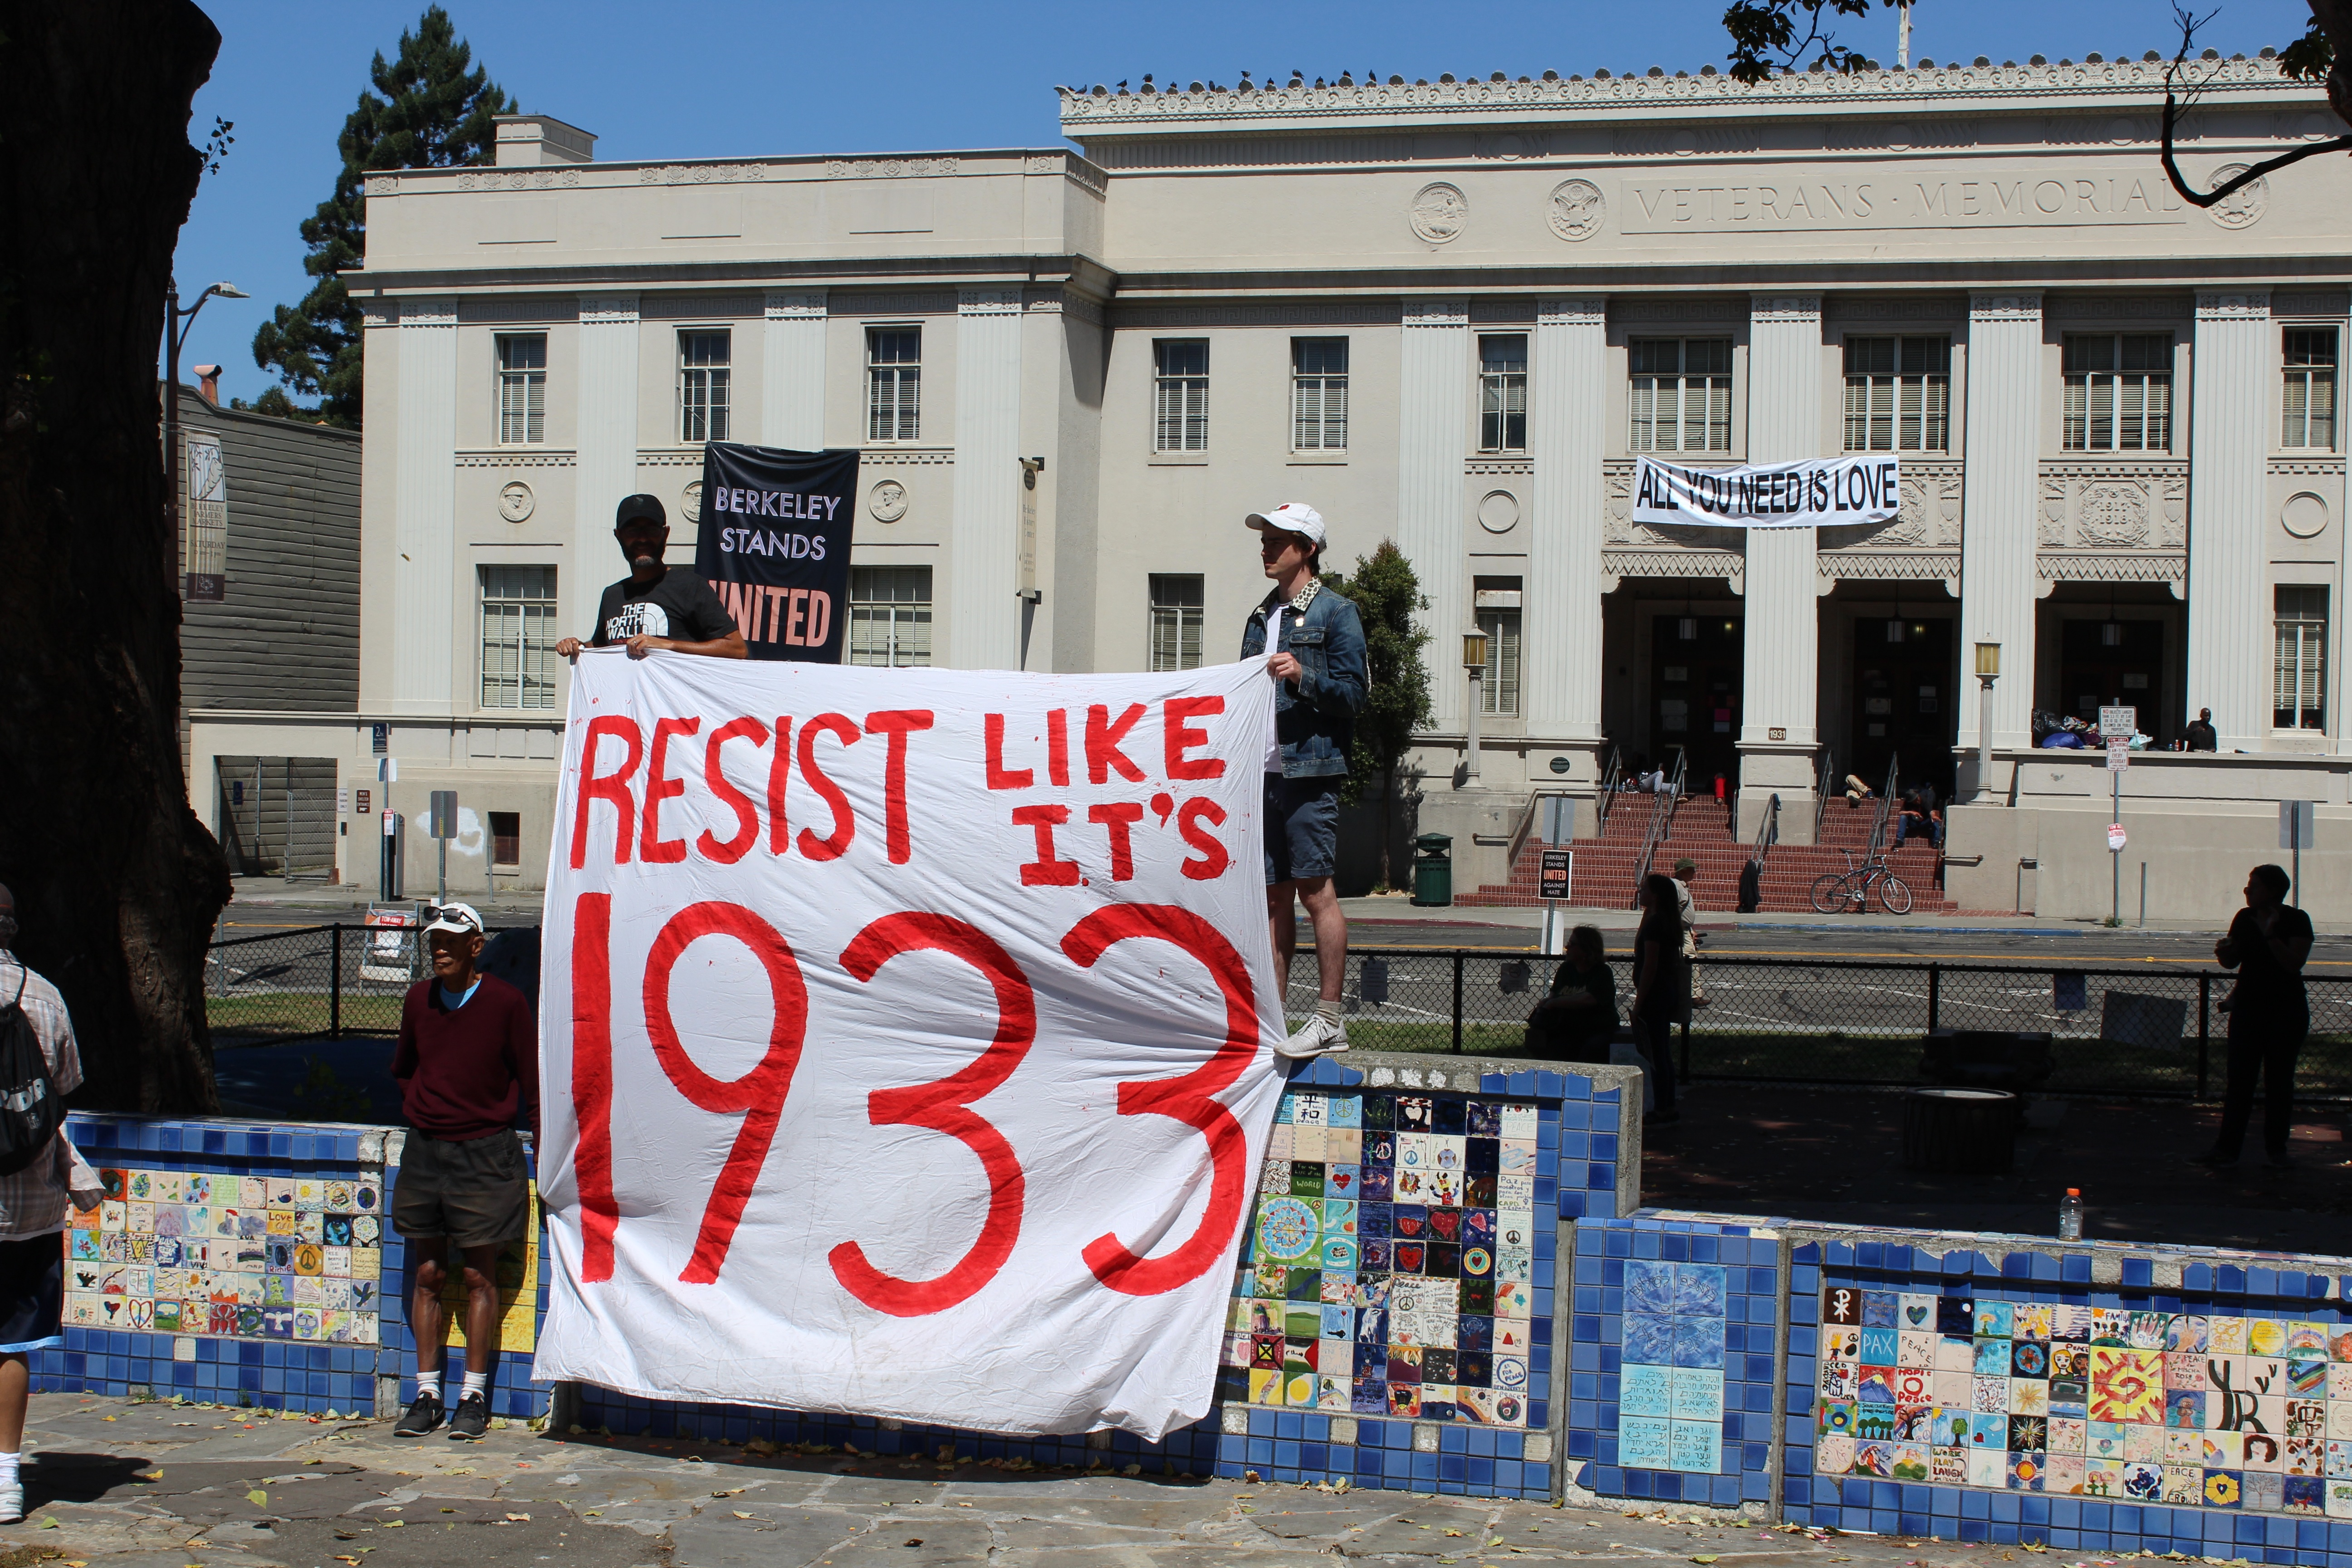 Counterprotesters at Martin Luther King Jr. Civic Center Park in Berkeley, Aug. 27, 2017 (Photo/Rob Gloster)